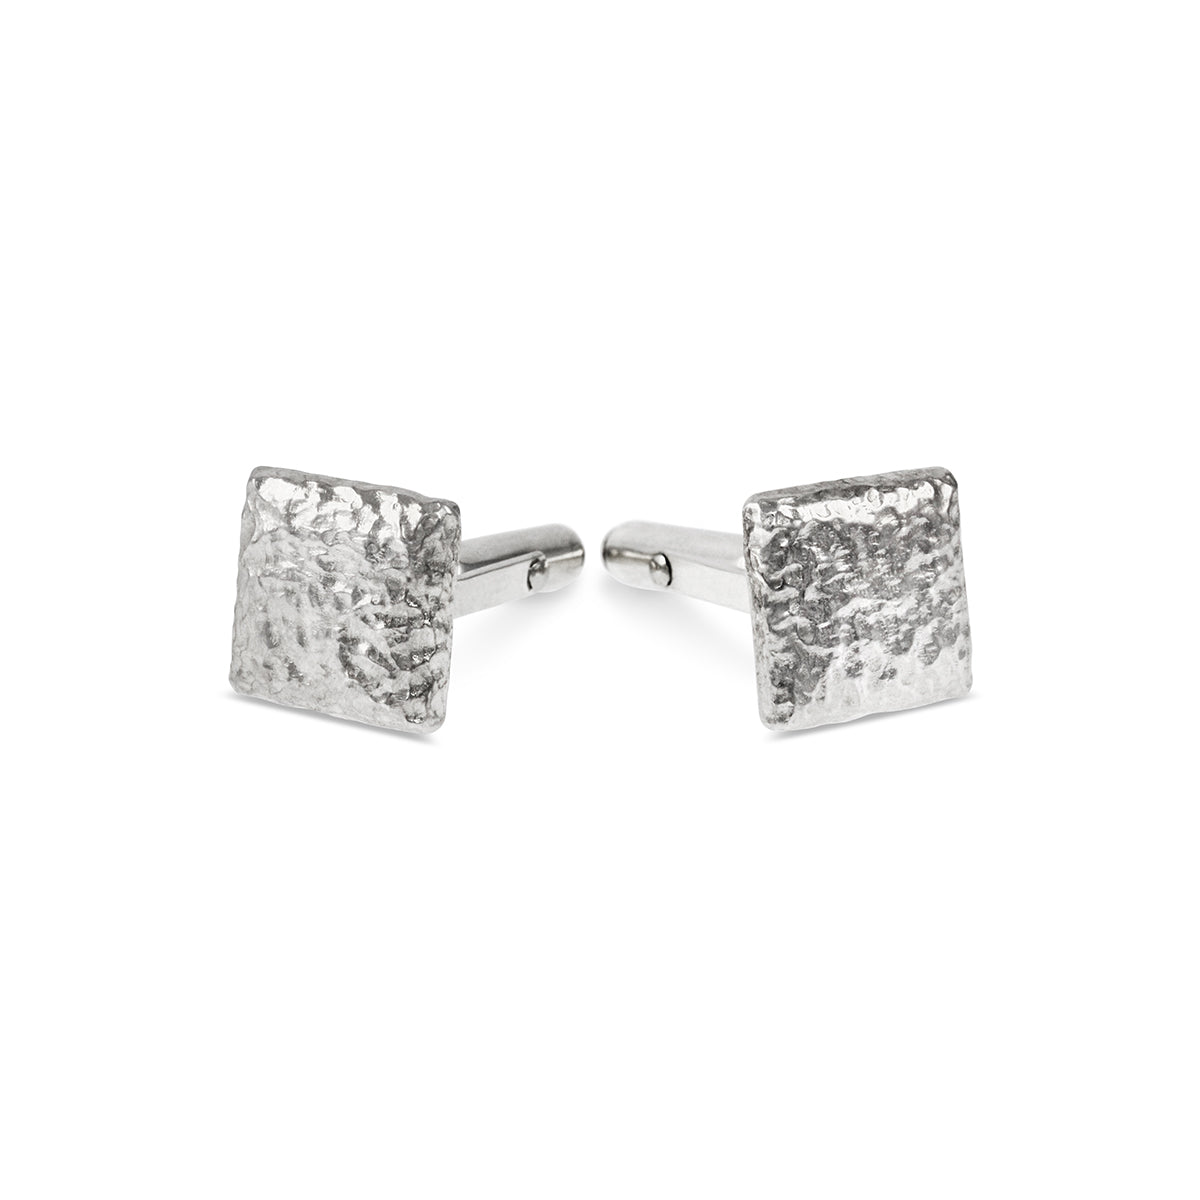 Cufflinks handmade in sterling silver with a rustic texture. - Paul Magen